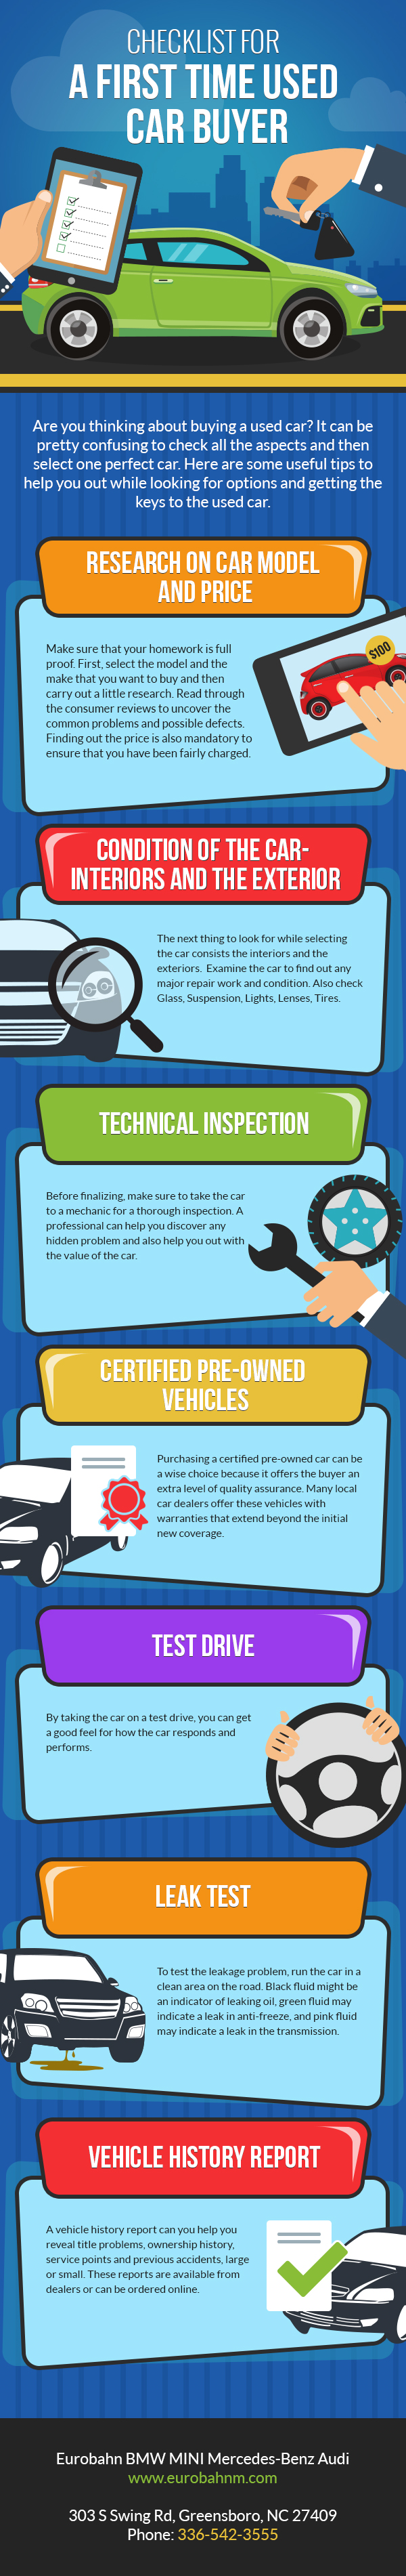 Checklist For A First Time Used Car Buyer [Infographic] | The Local ...